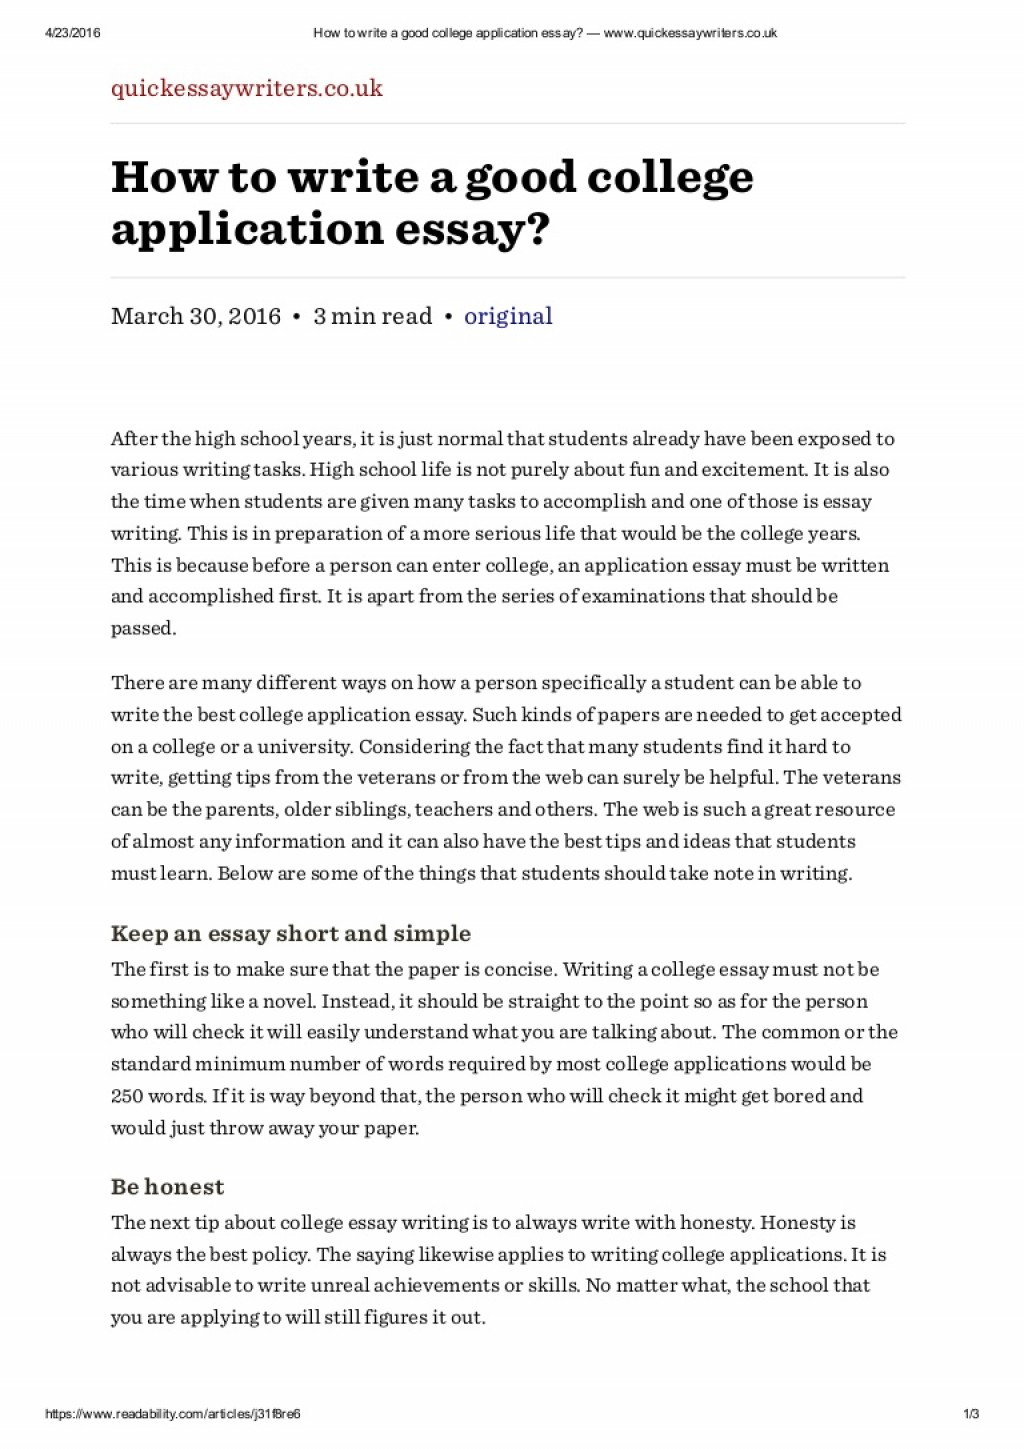 003 Essay Example College Length What To Write In Application Letter How Start App Tips Examples Writing Samples Topics Format Outline Ideas Stirring Normal Paragraph Personal Large